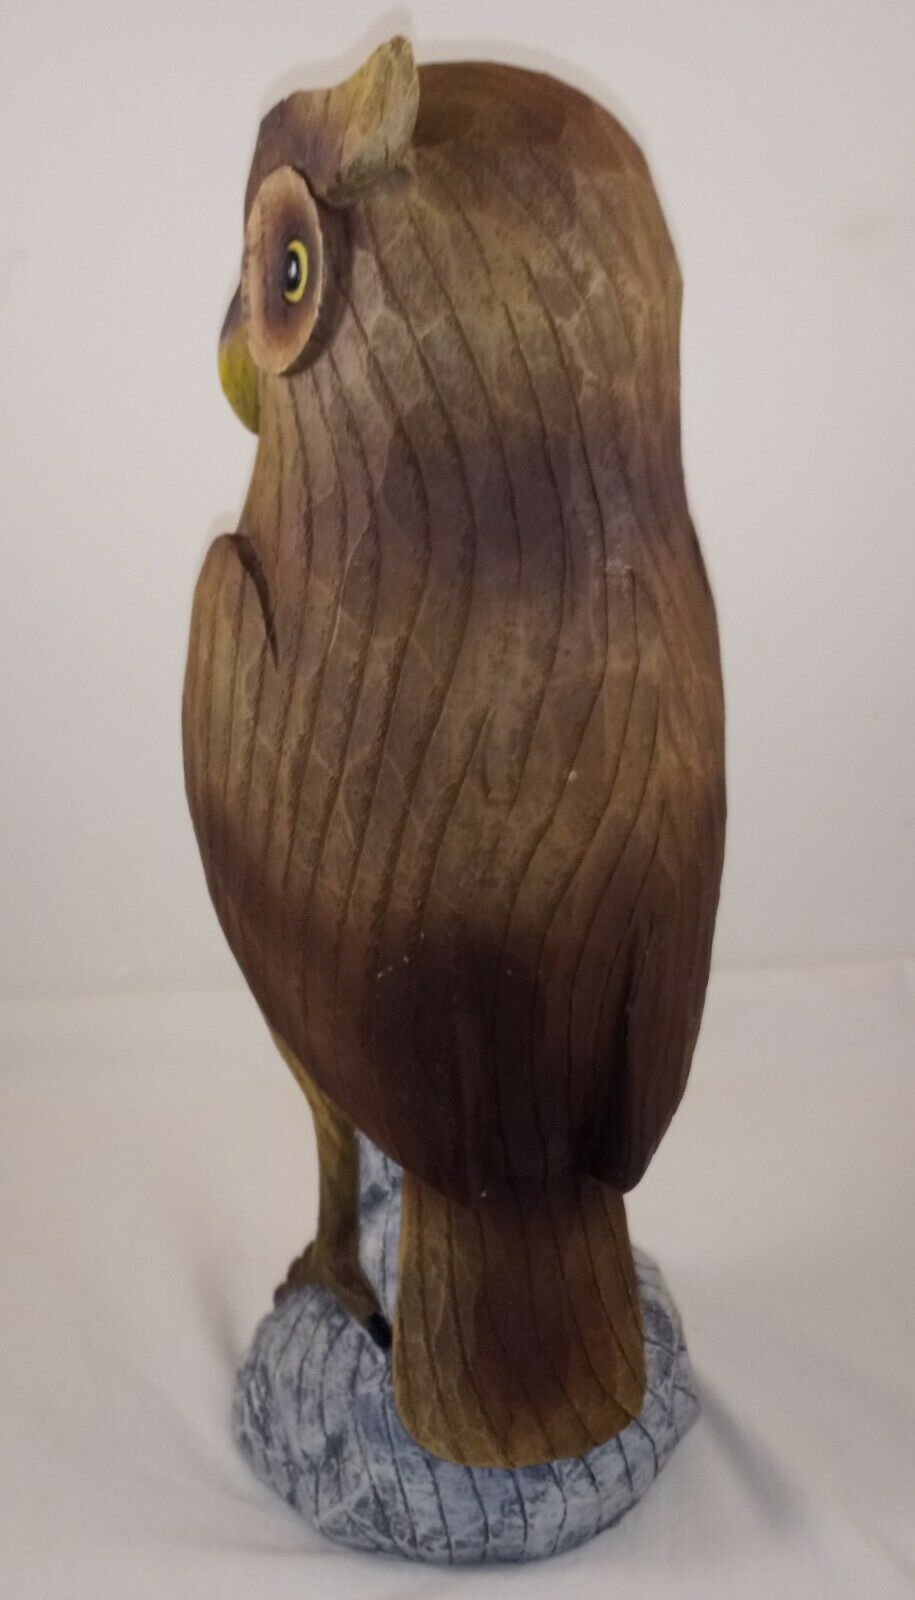 "Large HOOT OWL Sitting on a Tree Stump 12"" Resin Figurine"